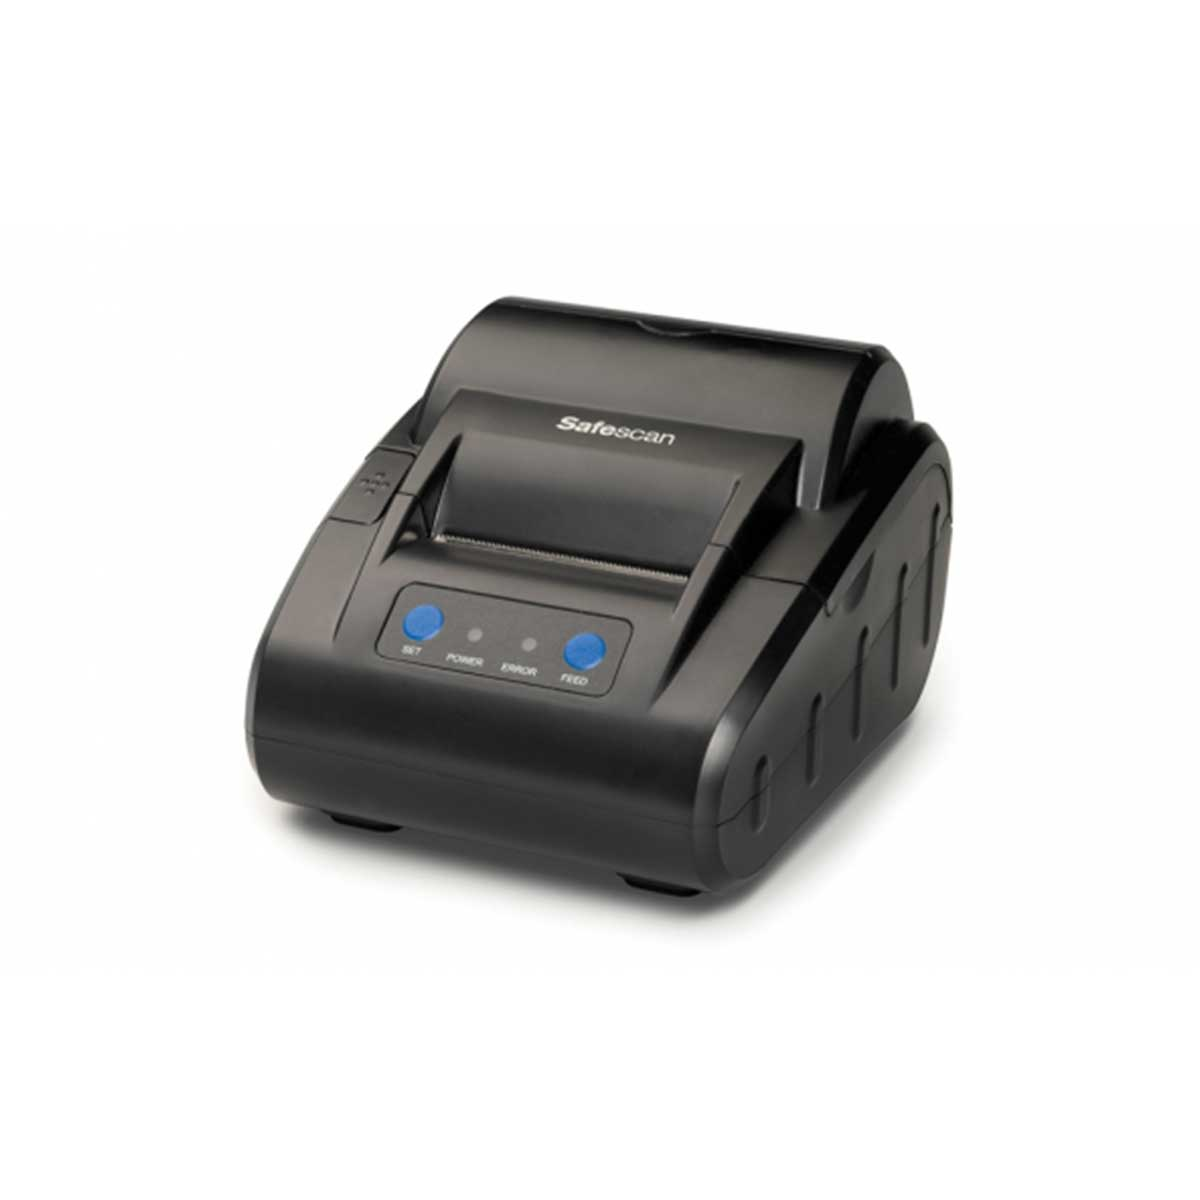 Safescan TP-230 Thermal Printer - Black